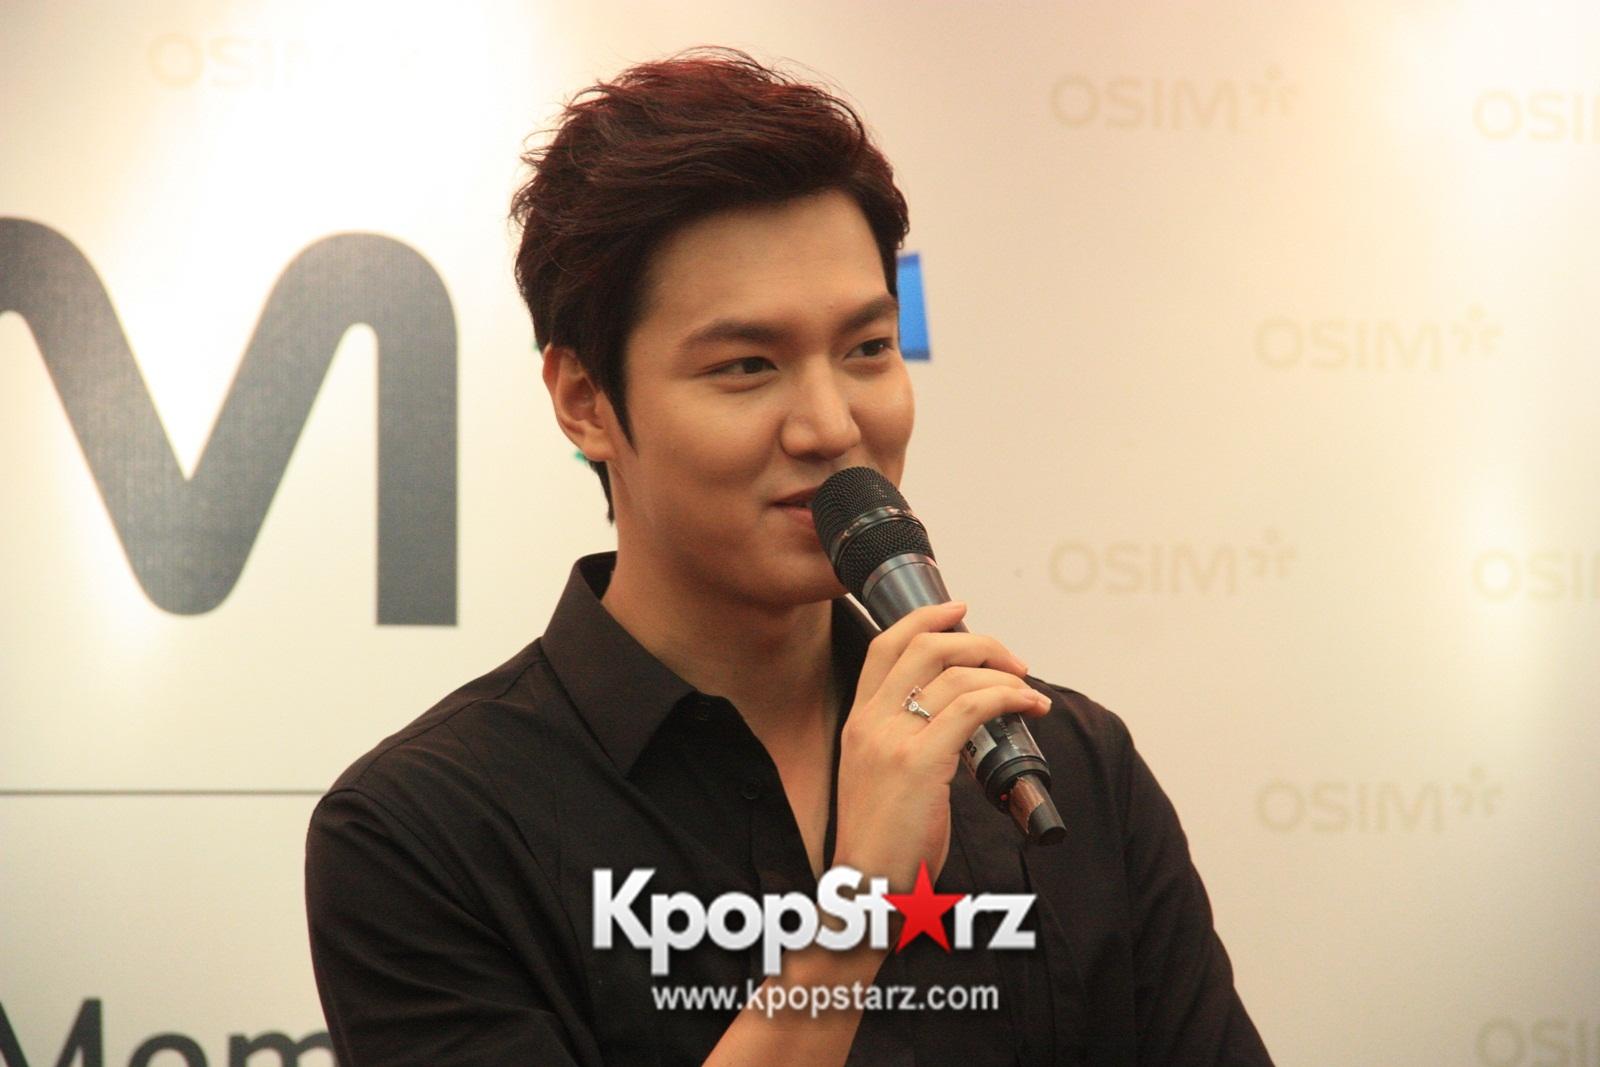 Lee Min Ho Attends Fan Meet & Greet Session with OSIM uDiva in Malaysia - Sept 28, 2014 [PHOTOS]